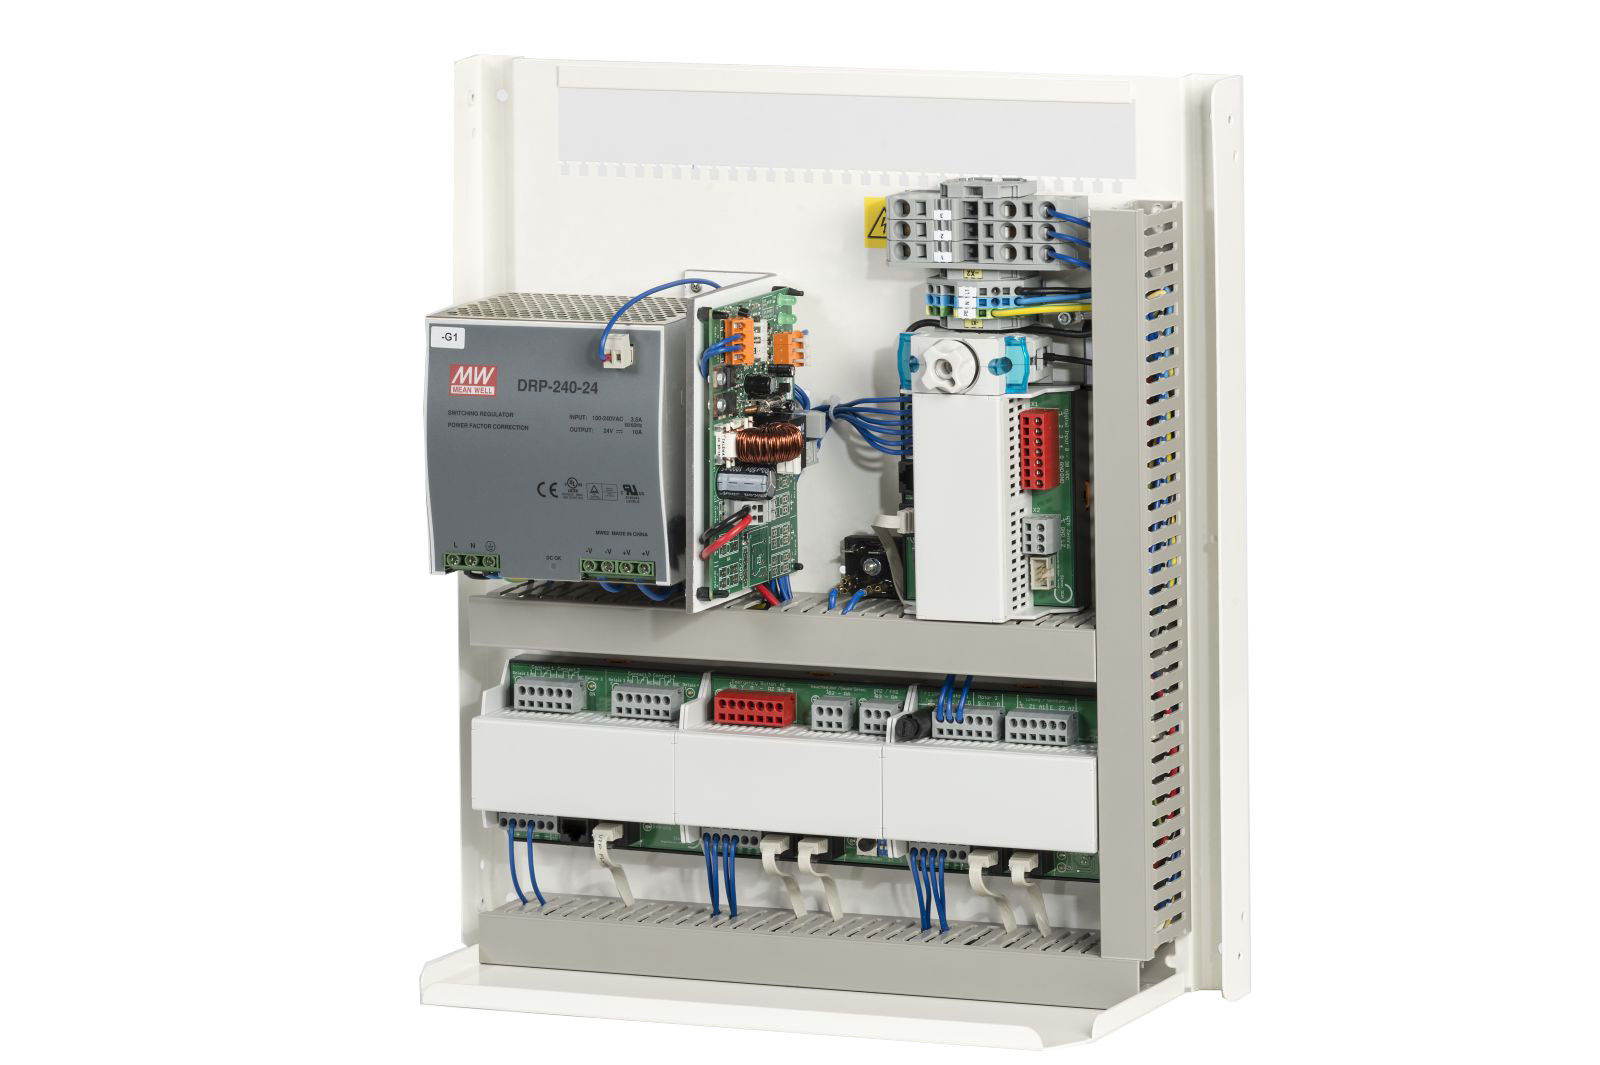 M-SHEV® - The intelligent SHE control panel